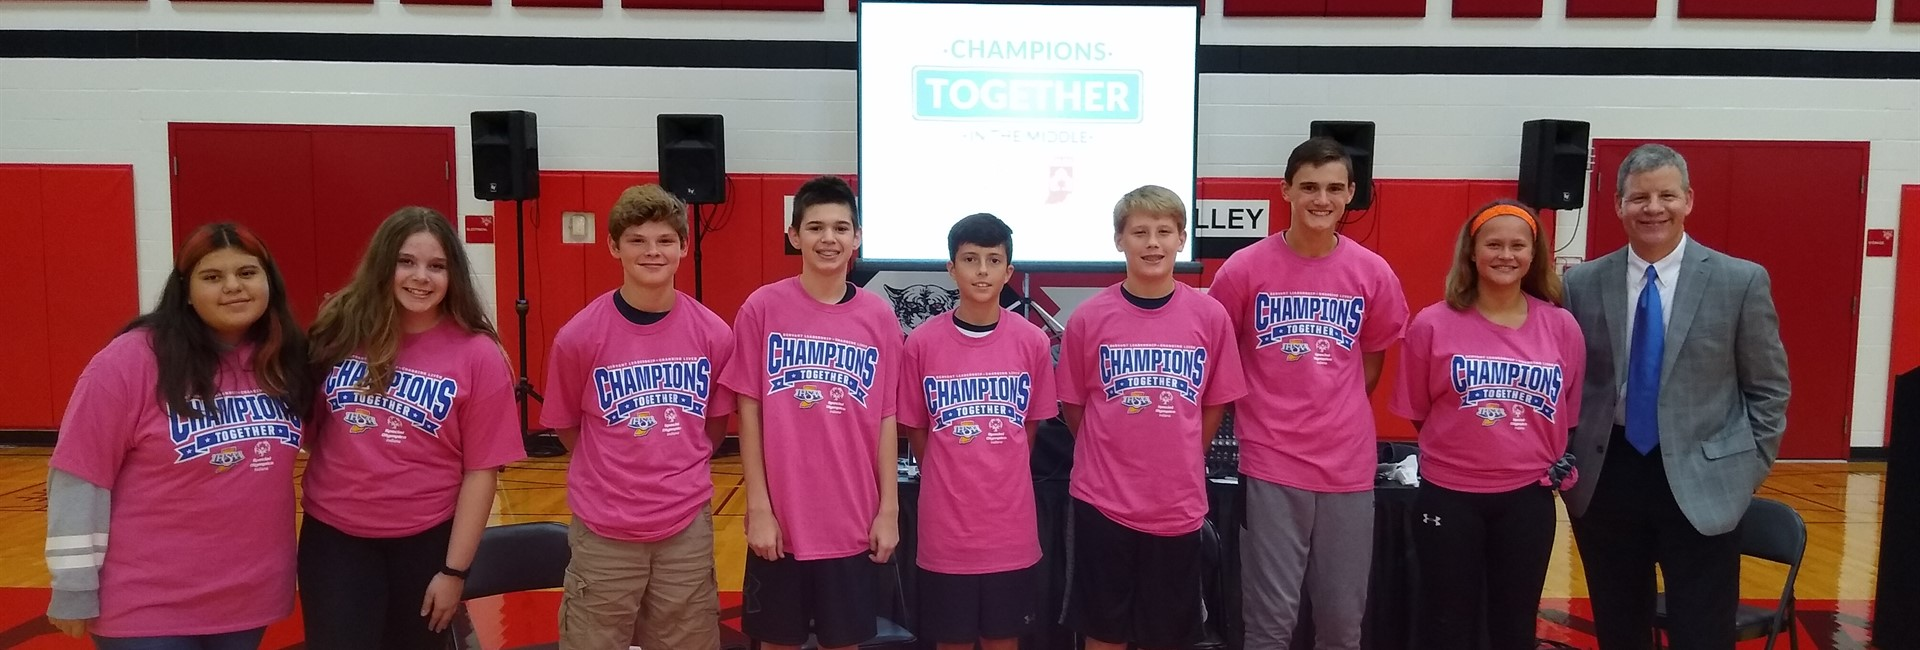 KVMS Champions Together Leadership Team